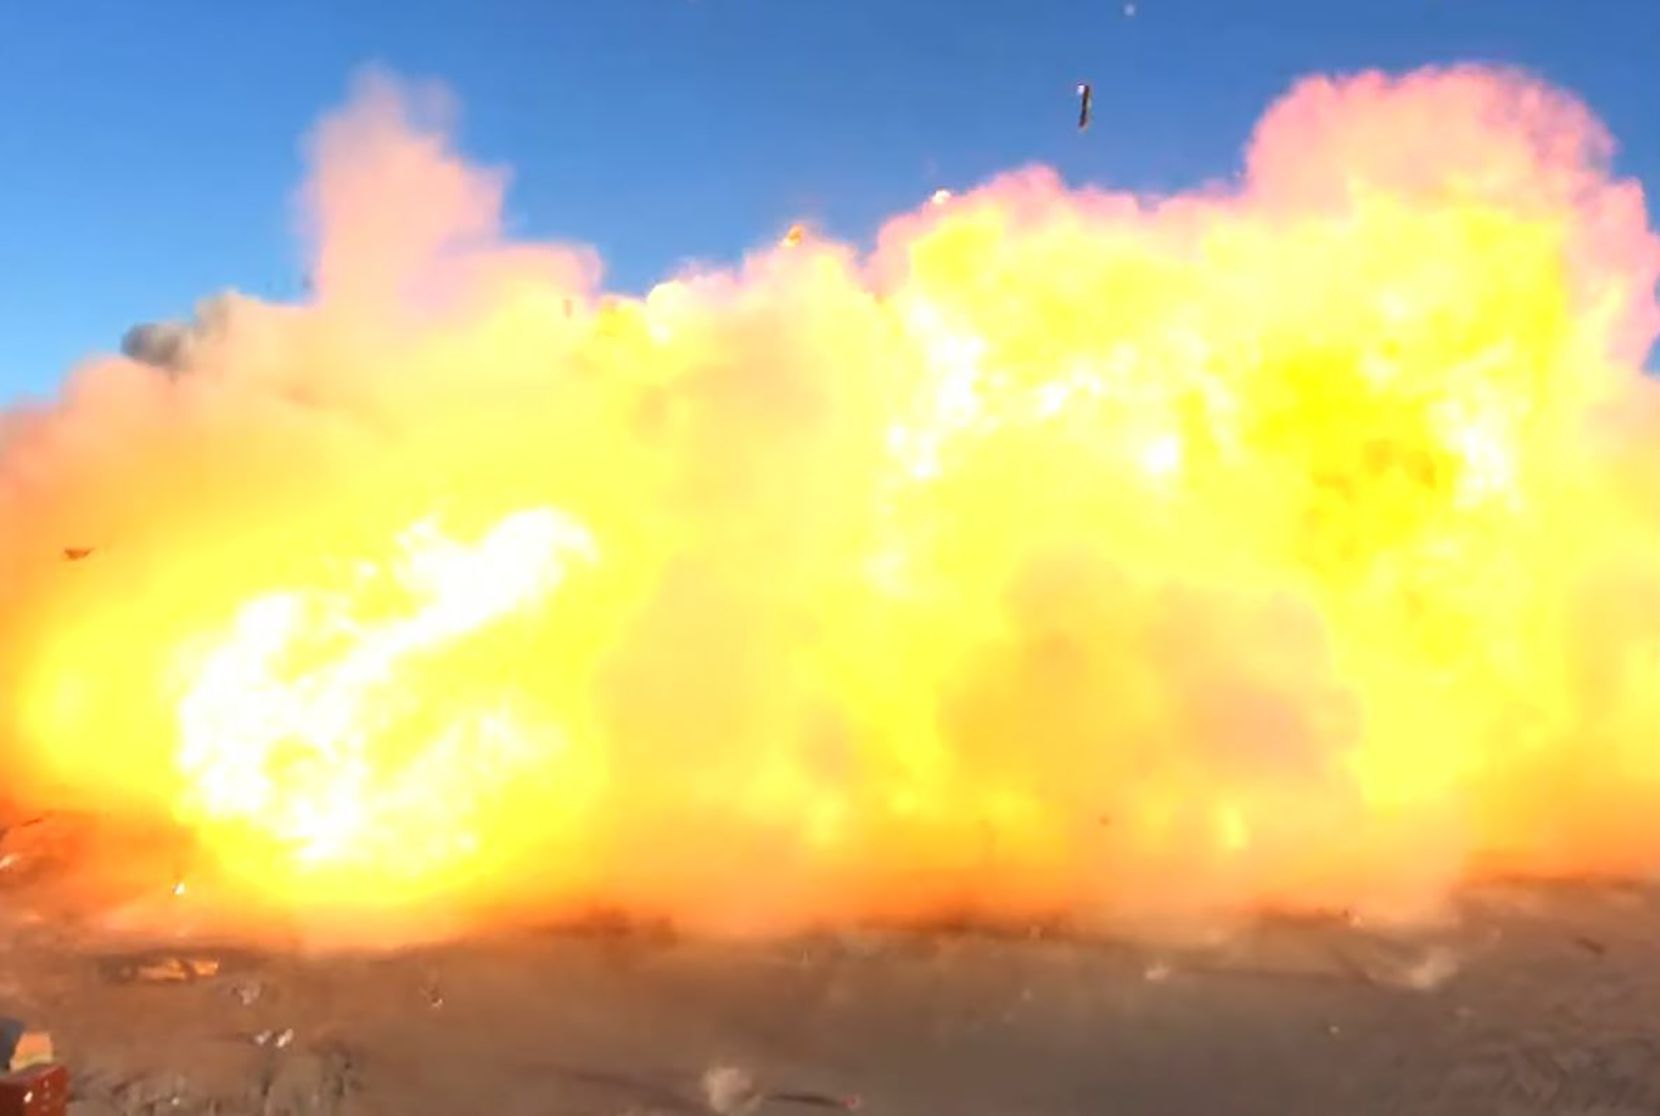 This SpaceX video frame grab image shows SpaceX's Starship SN8 rocket prototype crashing on landing at the company's Boca Chica, Texas facility during an attempted high-altitude launch test on Dec. 9, 2020.